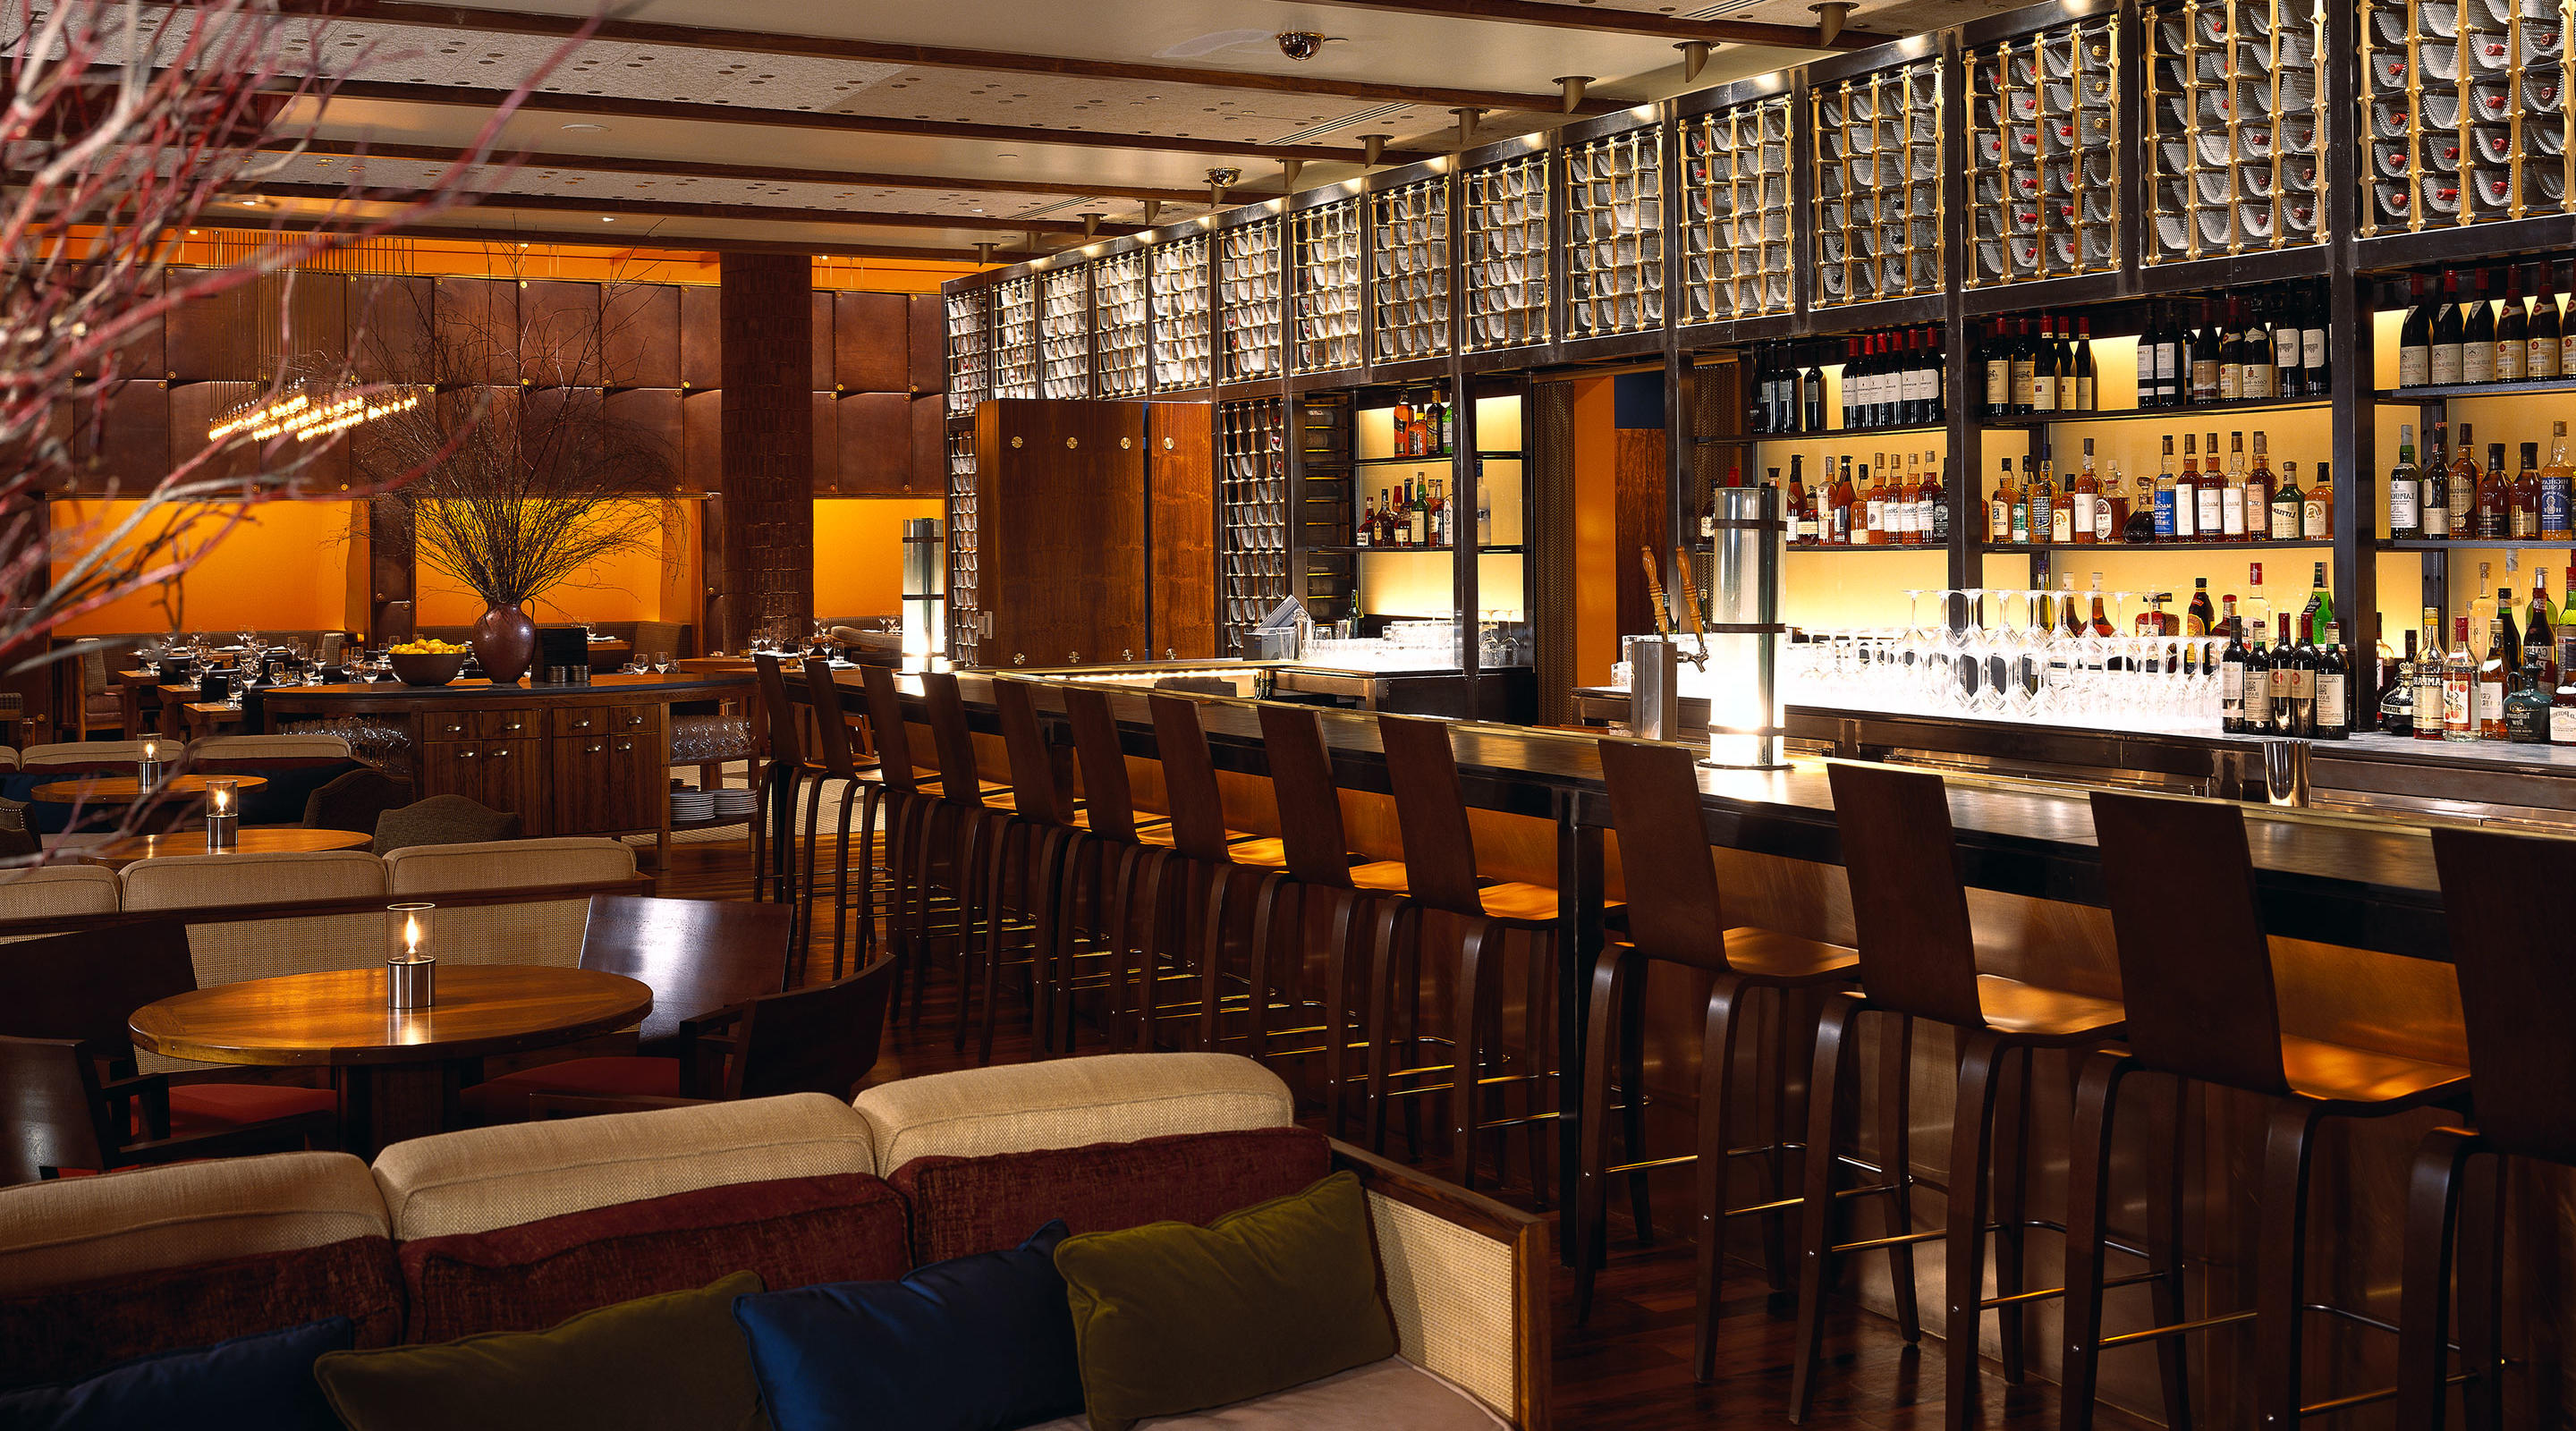 The Bar inside Tom Colicchio's Craftsteak